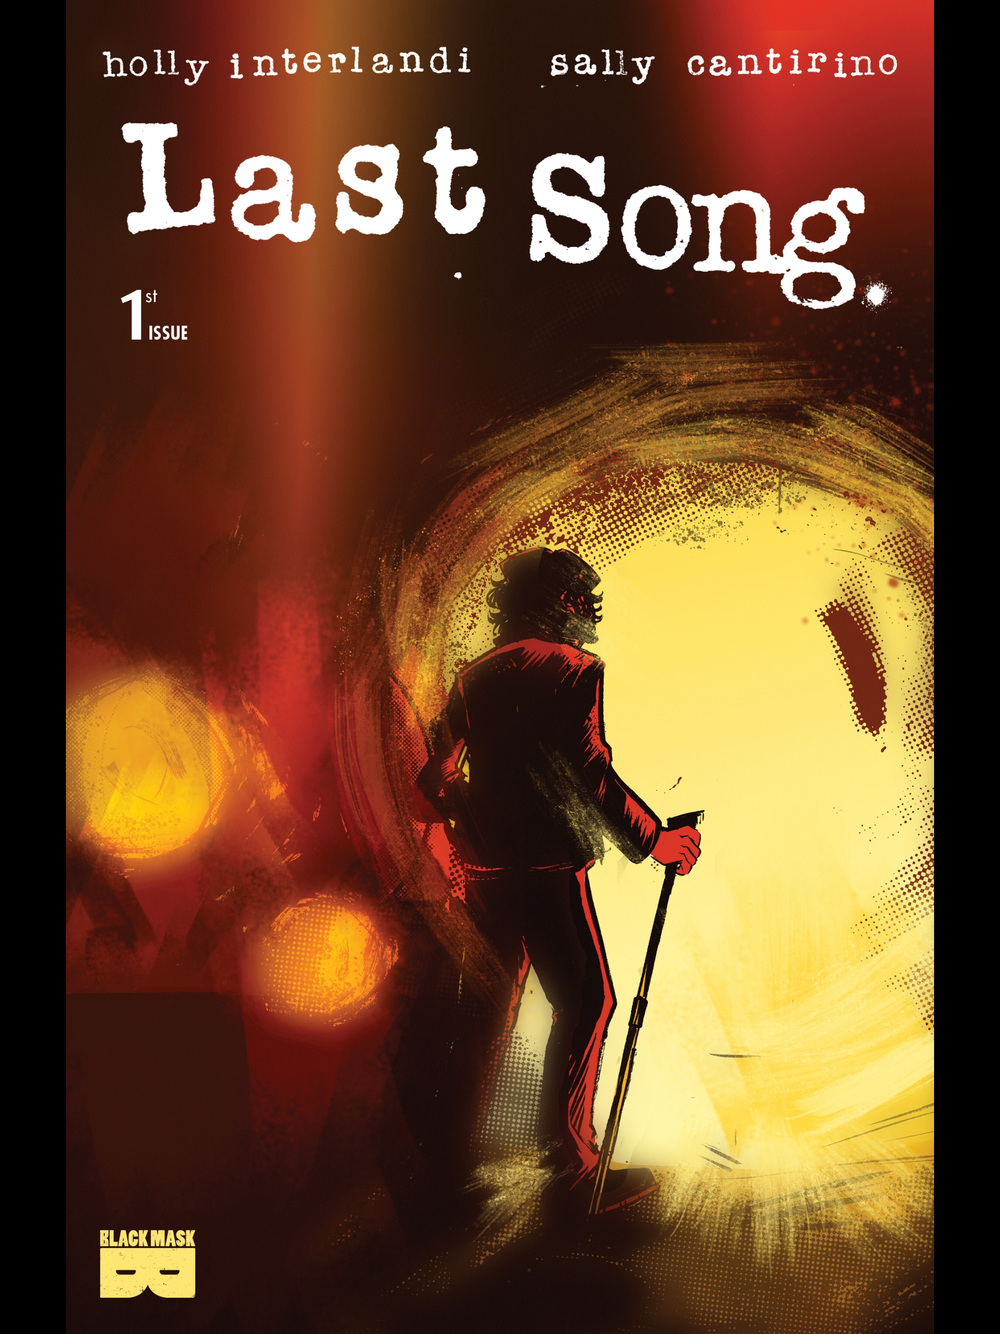 Above: Cover of Last Song #1from Black Mask.